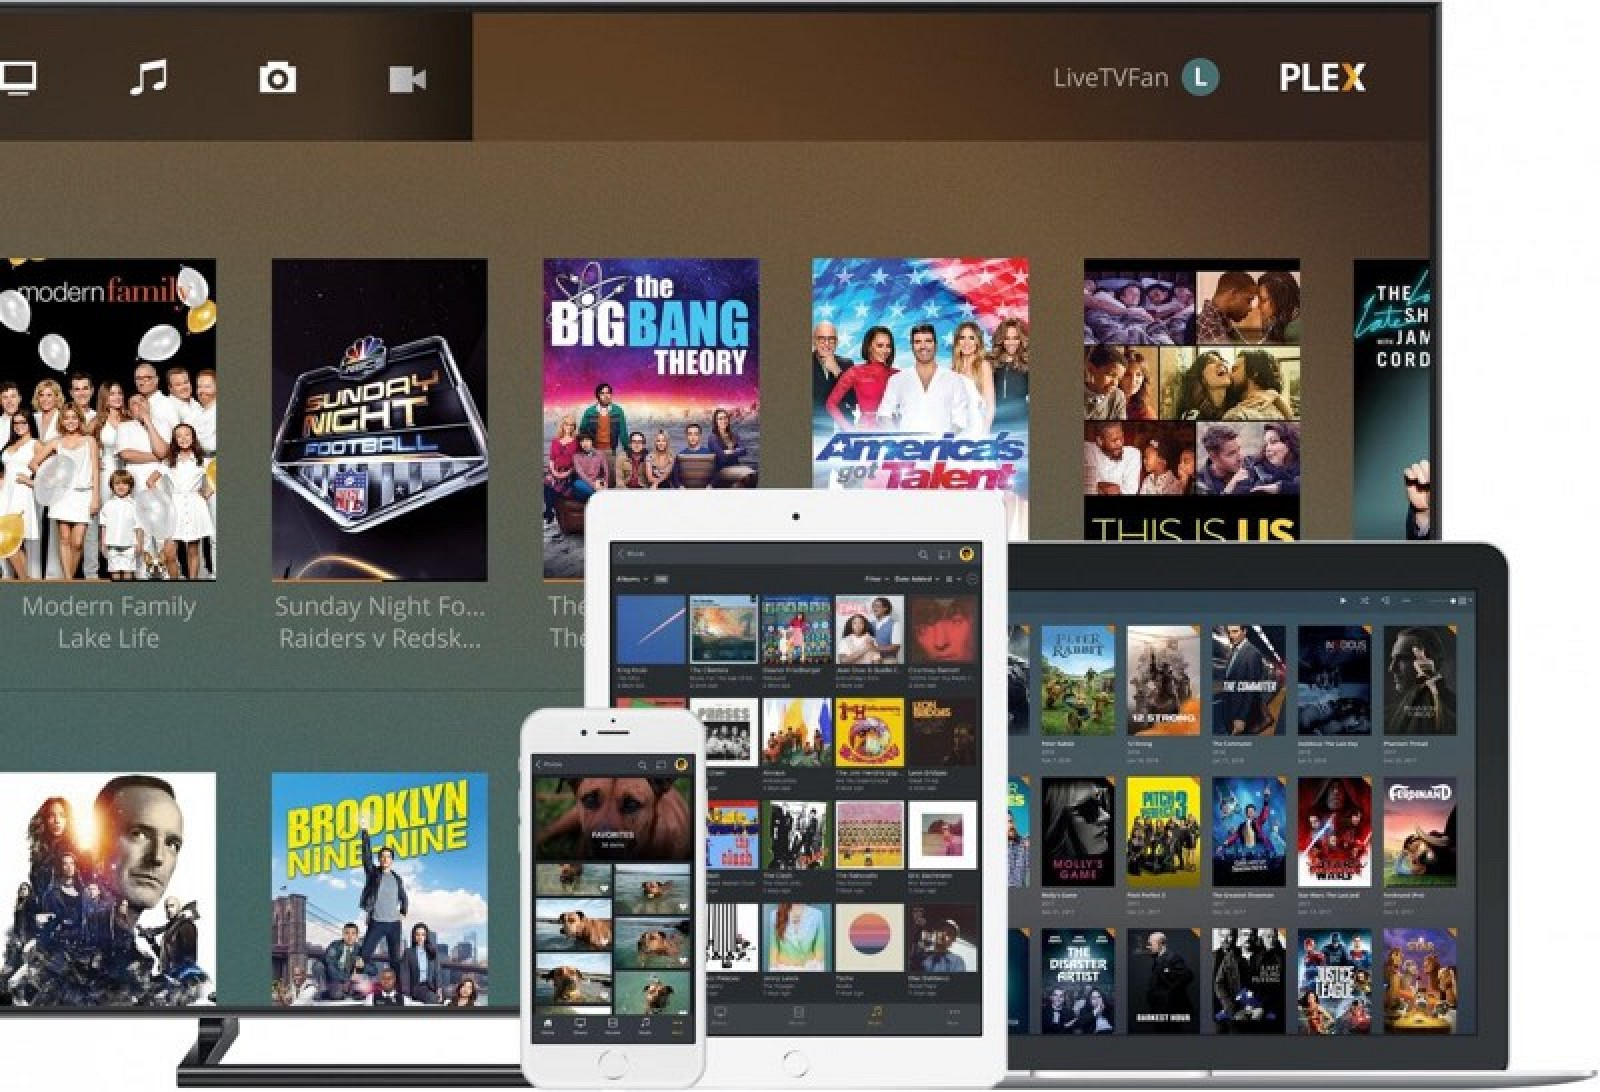 Plex Said to Be Mulling Ad-Supported Movies and More Premium